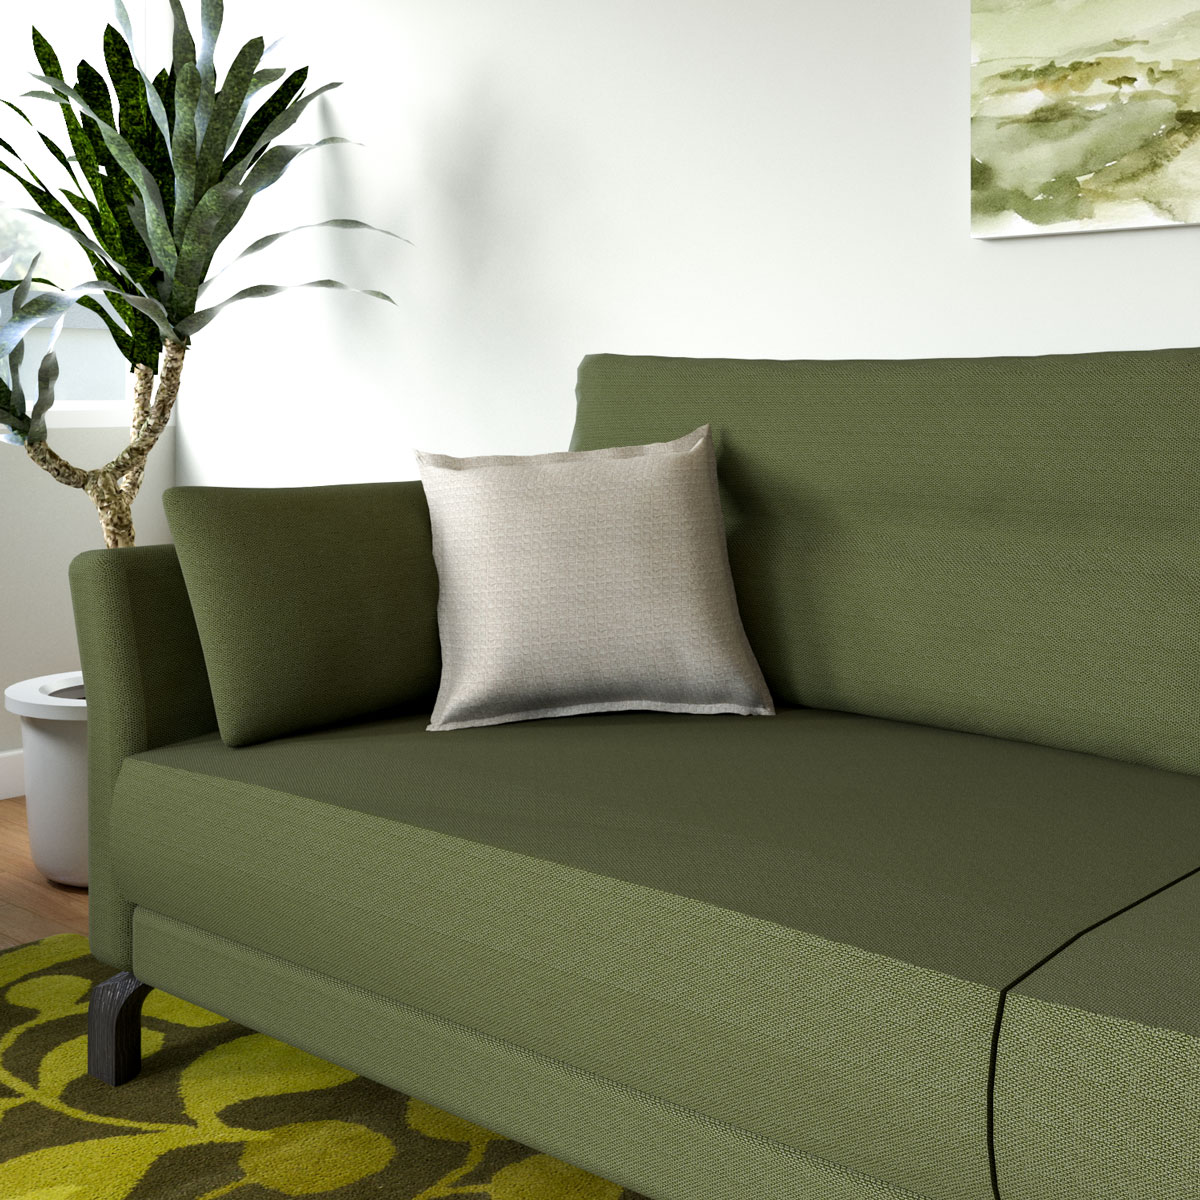 what color throw pillows for olive